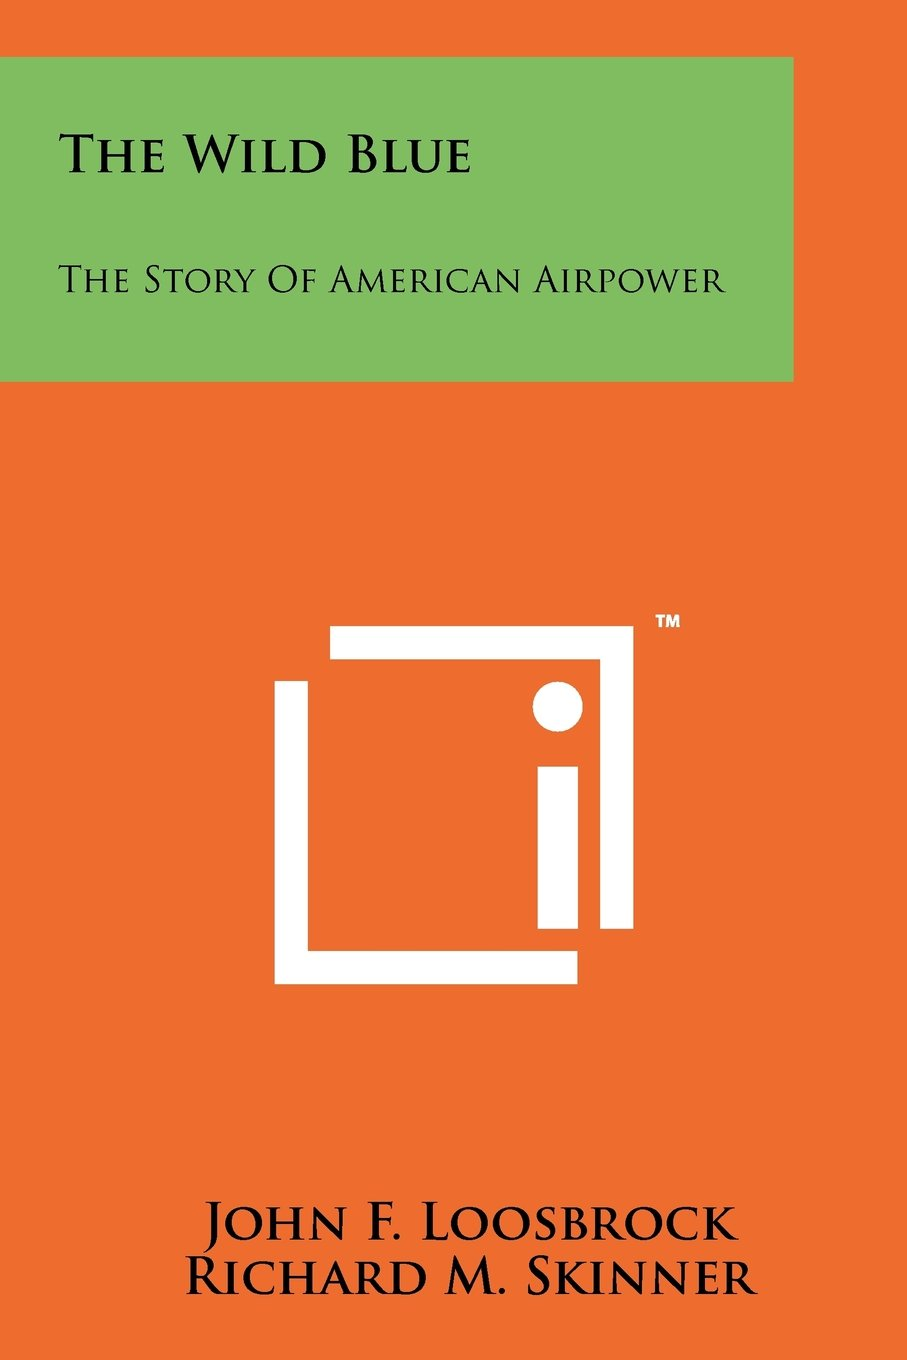 Download The Wild Blue: The Story of American Airpower pdf